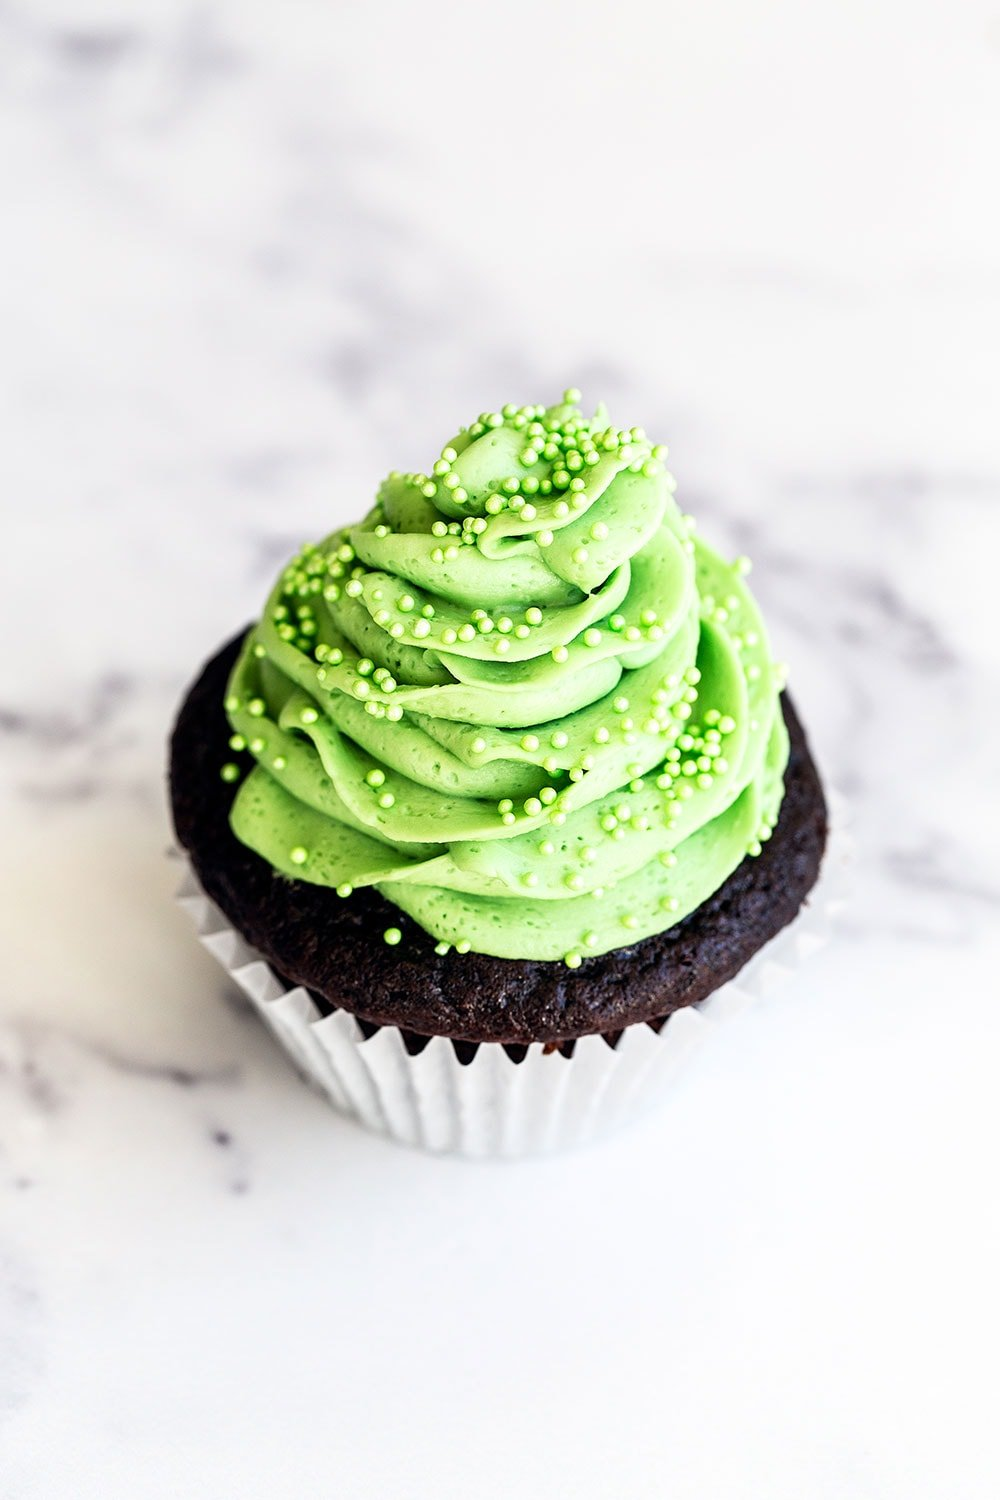 One chocolate mint cupcake on marble counter